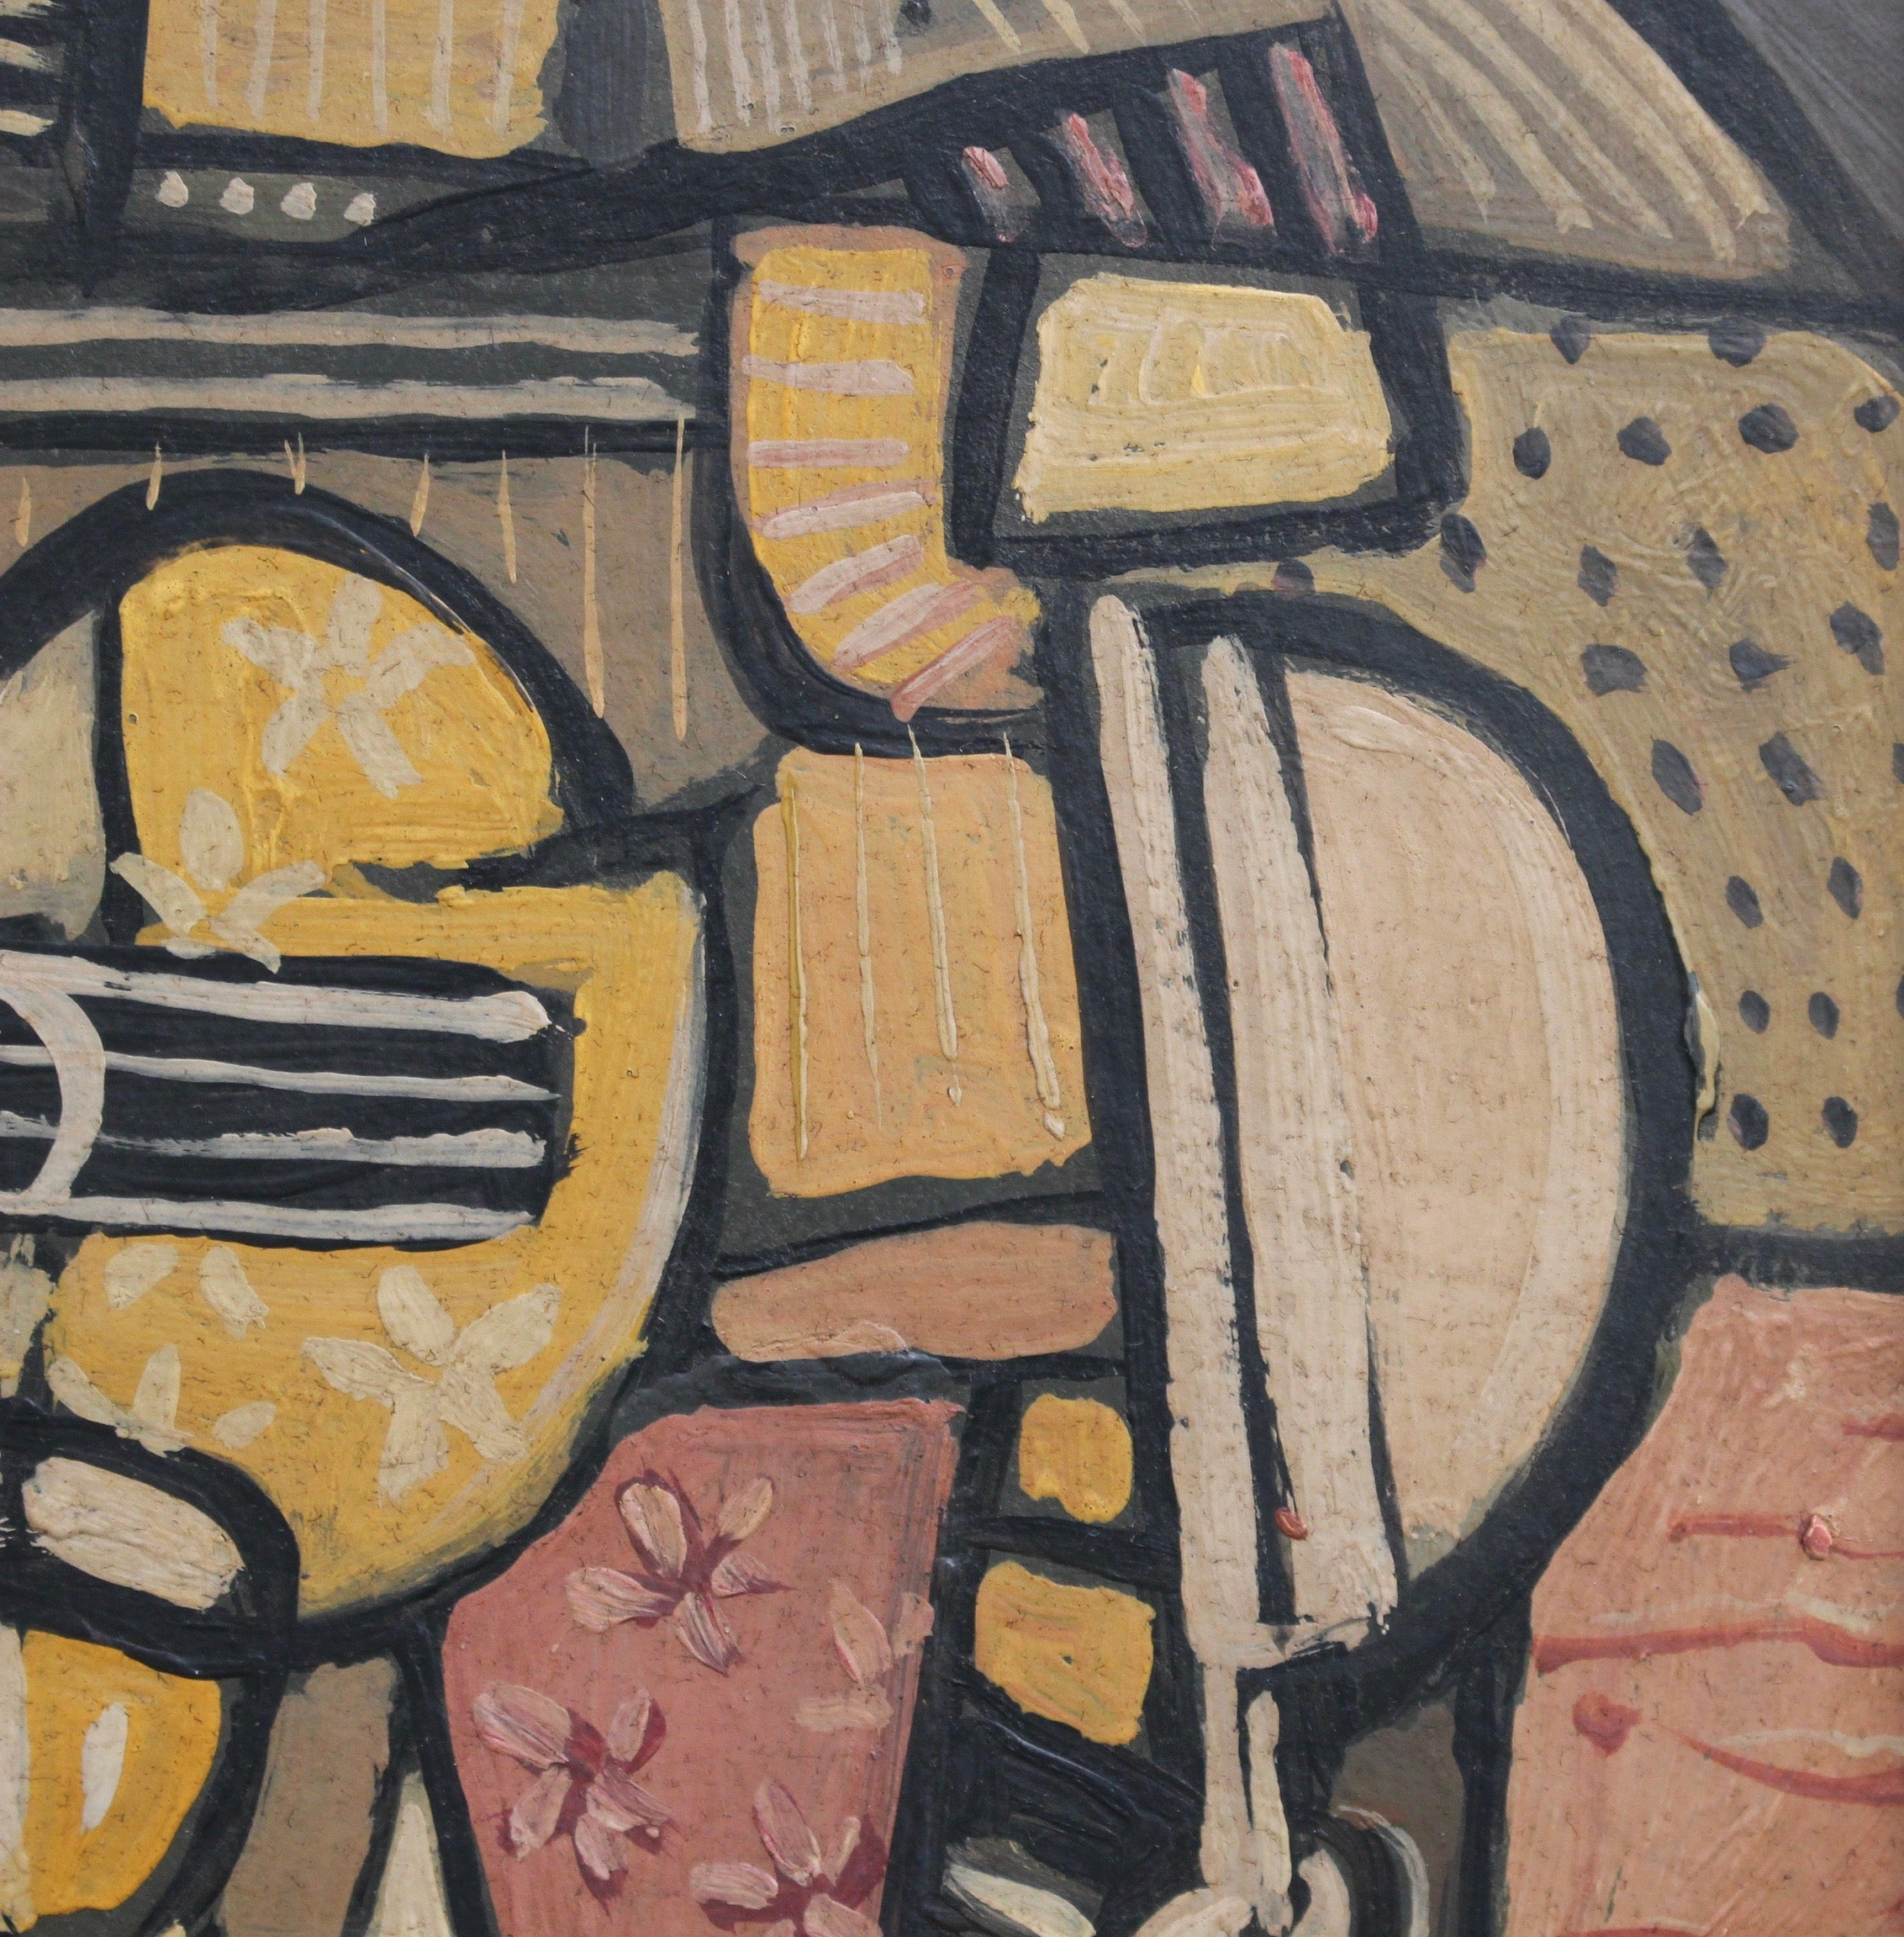 'Still Life with Guitar and Wine Glass' by J.G. (circa 1940s - 1960s)